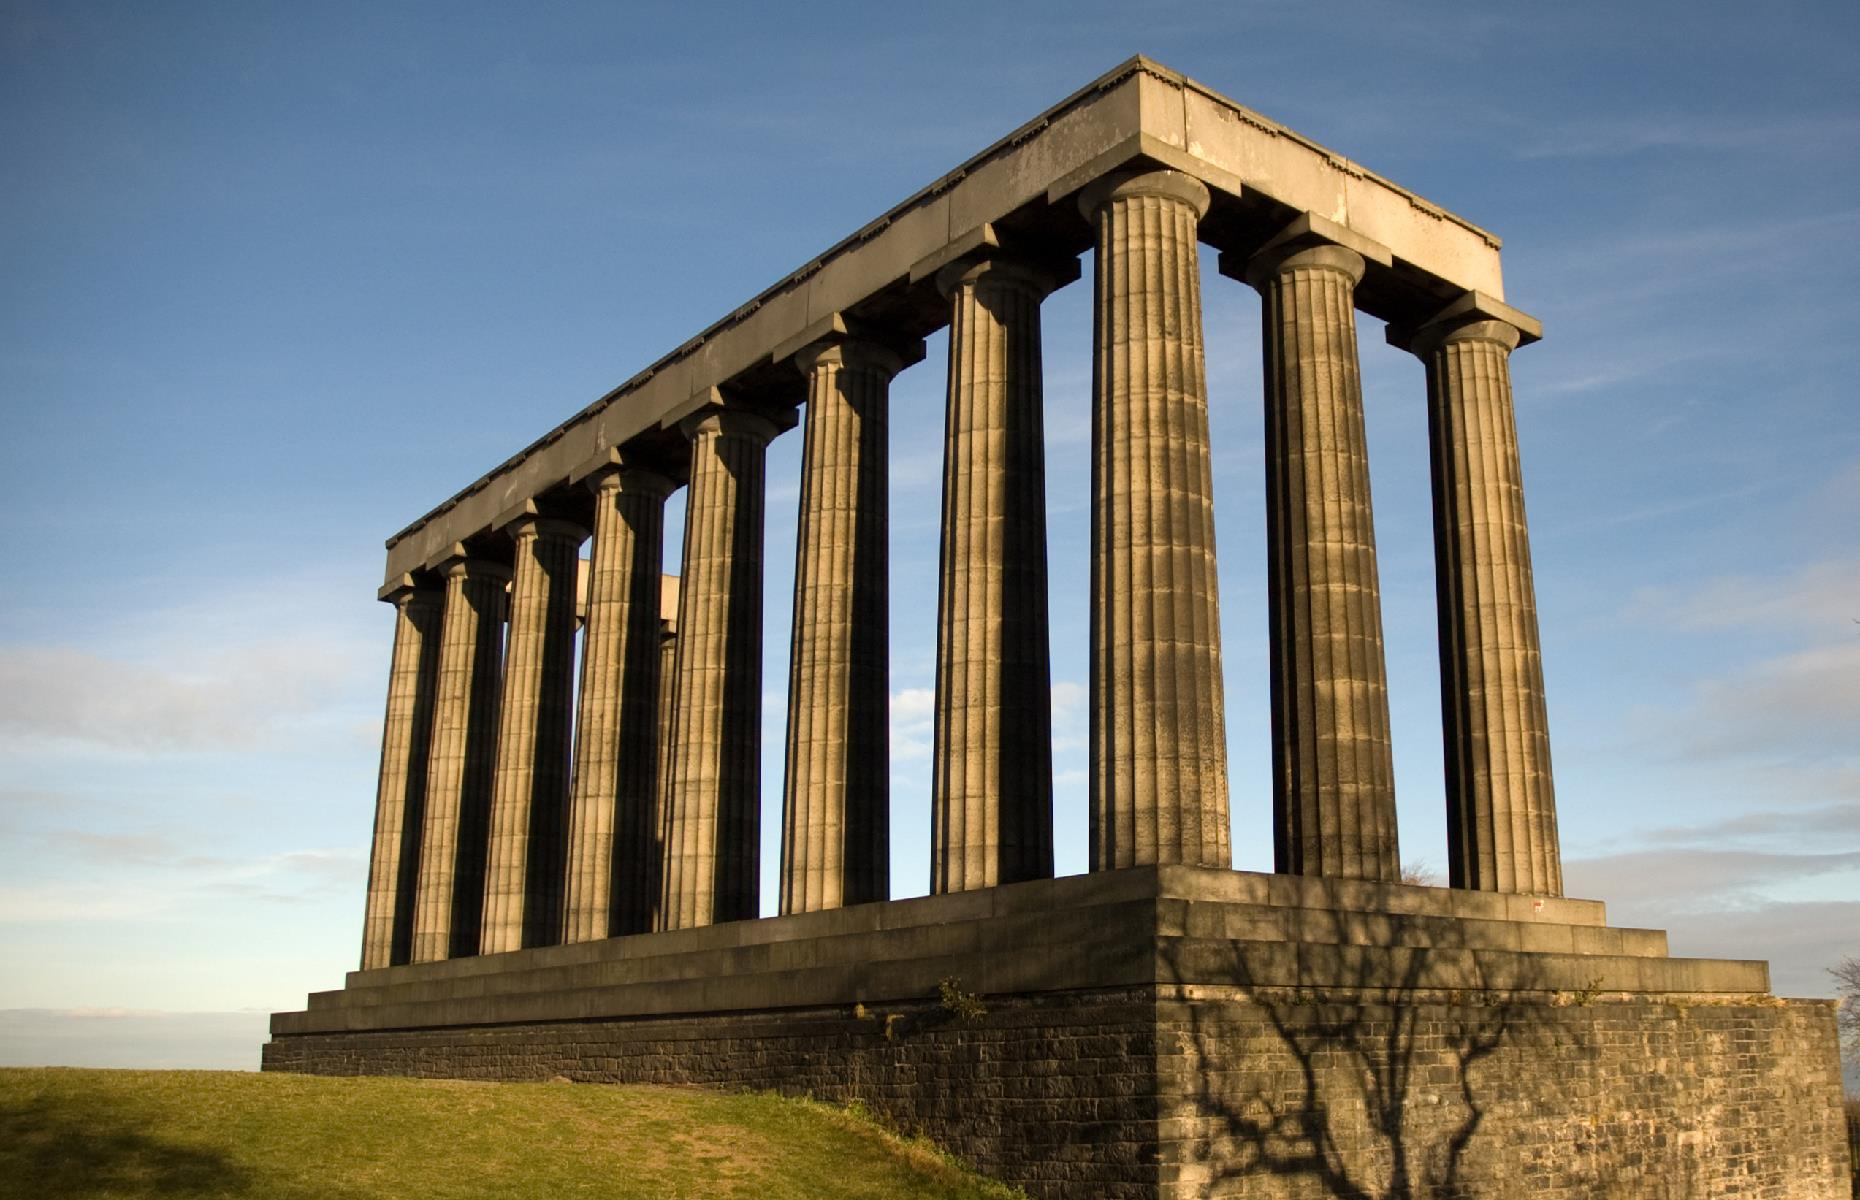 Slide 7 of 31: However, the project planners failed to collect enough money to complete the monument and tools were downed by 1829. When work finished, only 12 columns – the 12 still standing sentry on Calton Hill – had been erected. Over the decades, many ideas for how to use and/or complete the monument have been floated, but so far nothing has stuck. This little slice of Greece remains today. Take a look at the famous landmarks that were almost destroyed.